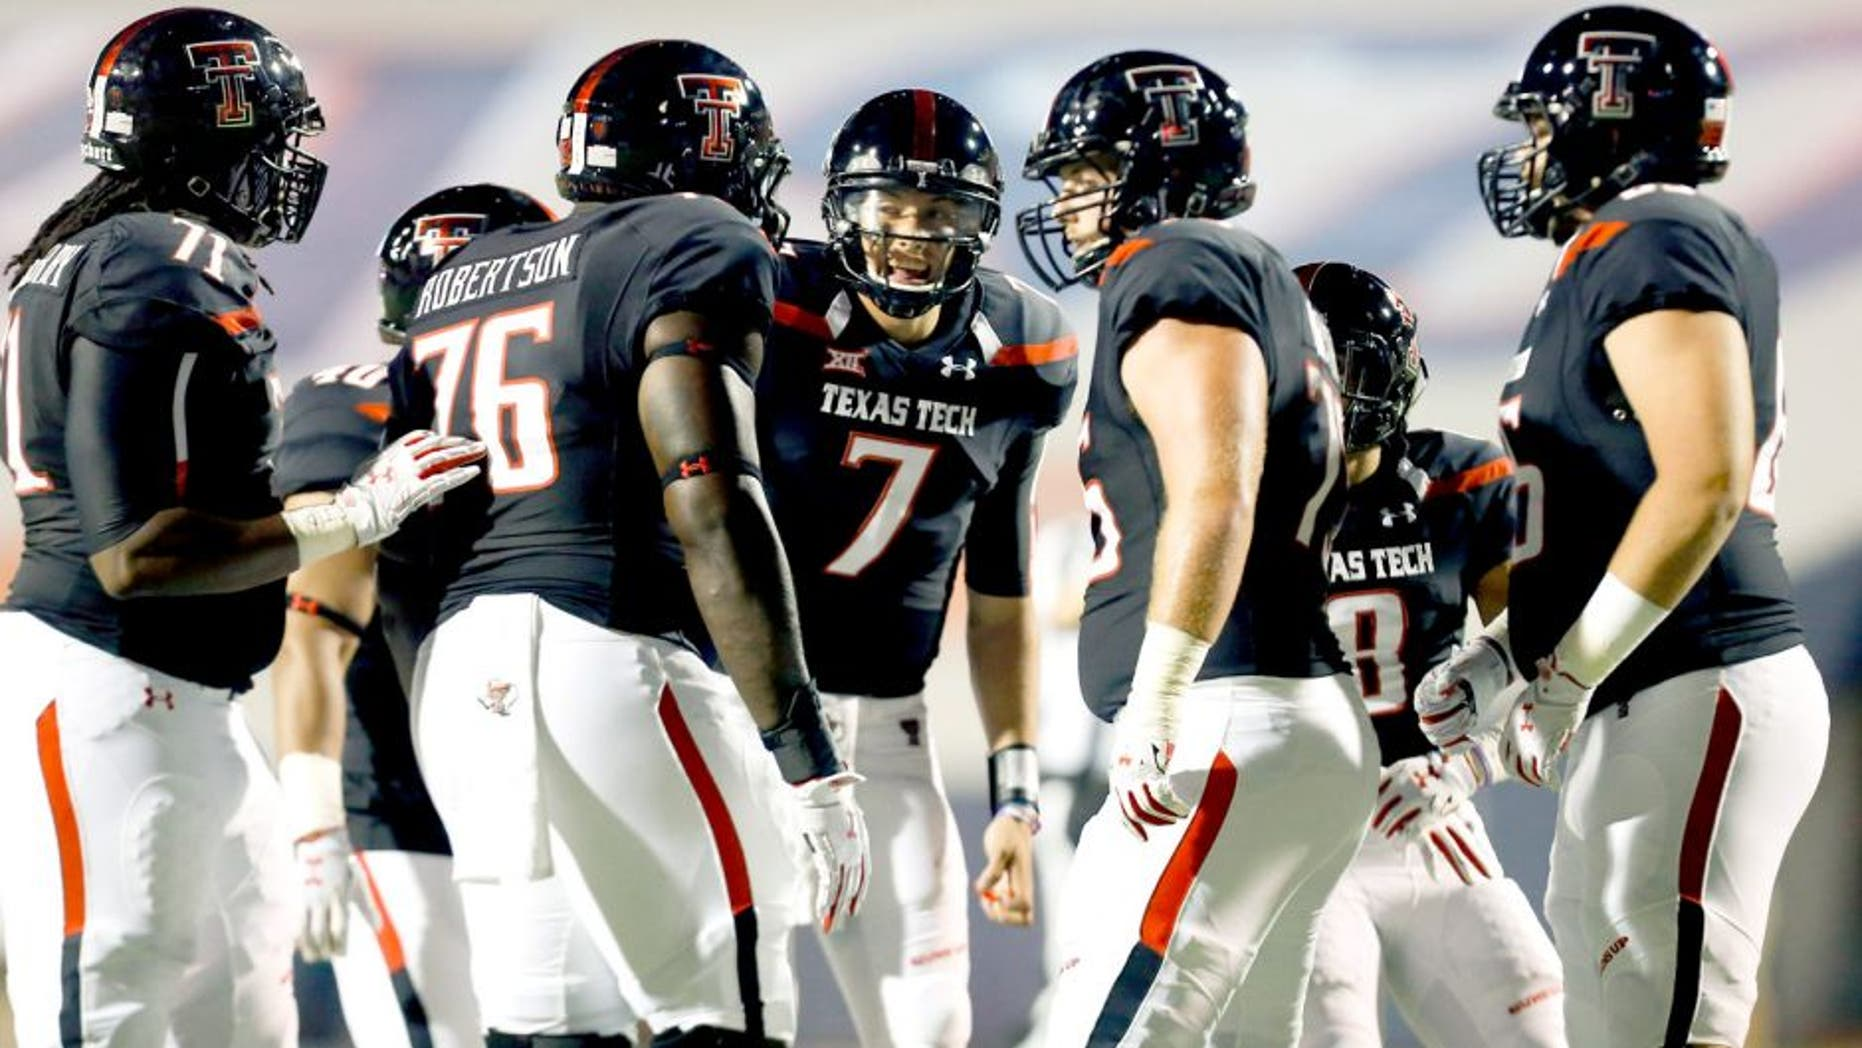 Sep 6, 2014; El Paso, TX, USA; Texas Tech Red Raiders quarterback Davis Webb (7) calls a play to his offense as they face the UTEP Miners defense at Sun Bowl Stadium. Mandatory Credit: Ivan Pierre Aguirre-USA TODAY Sports